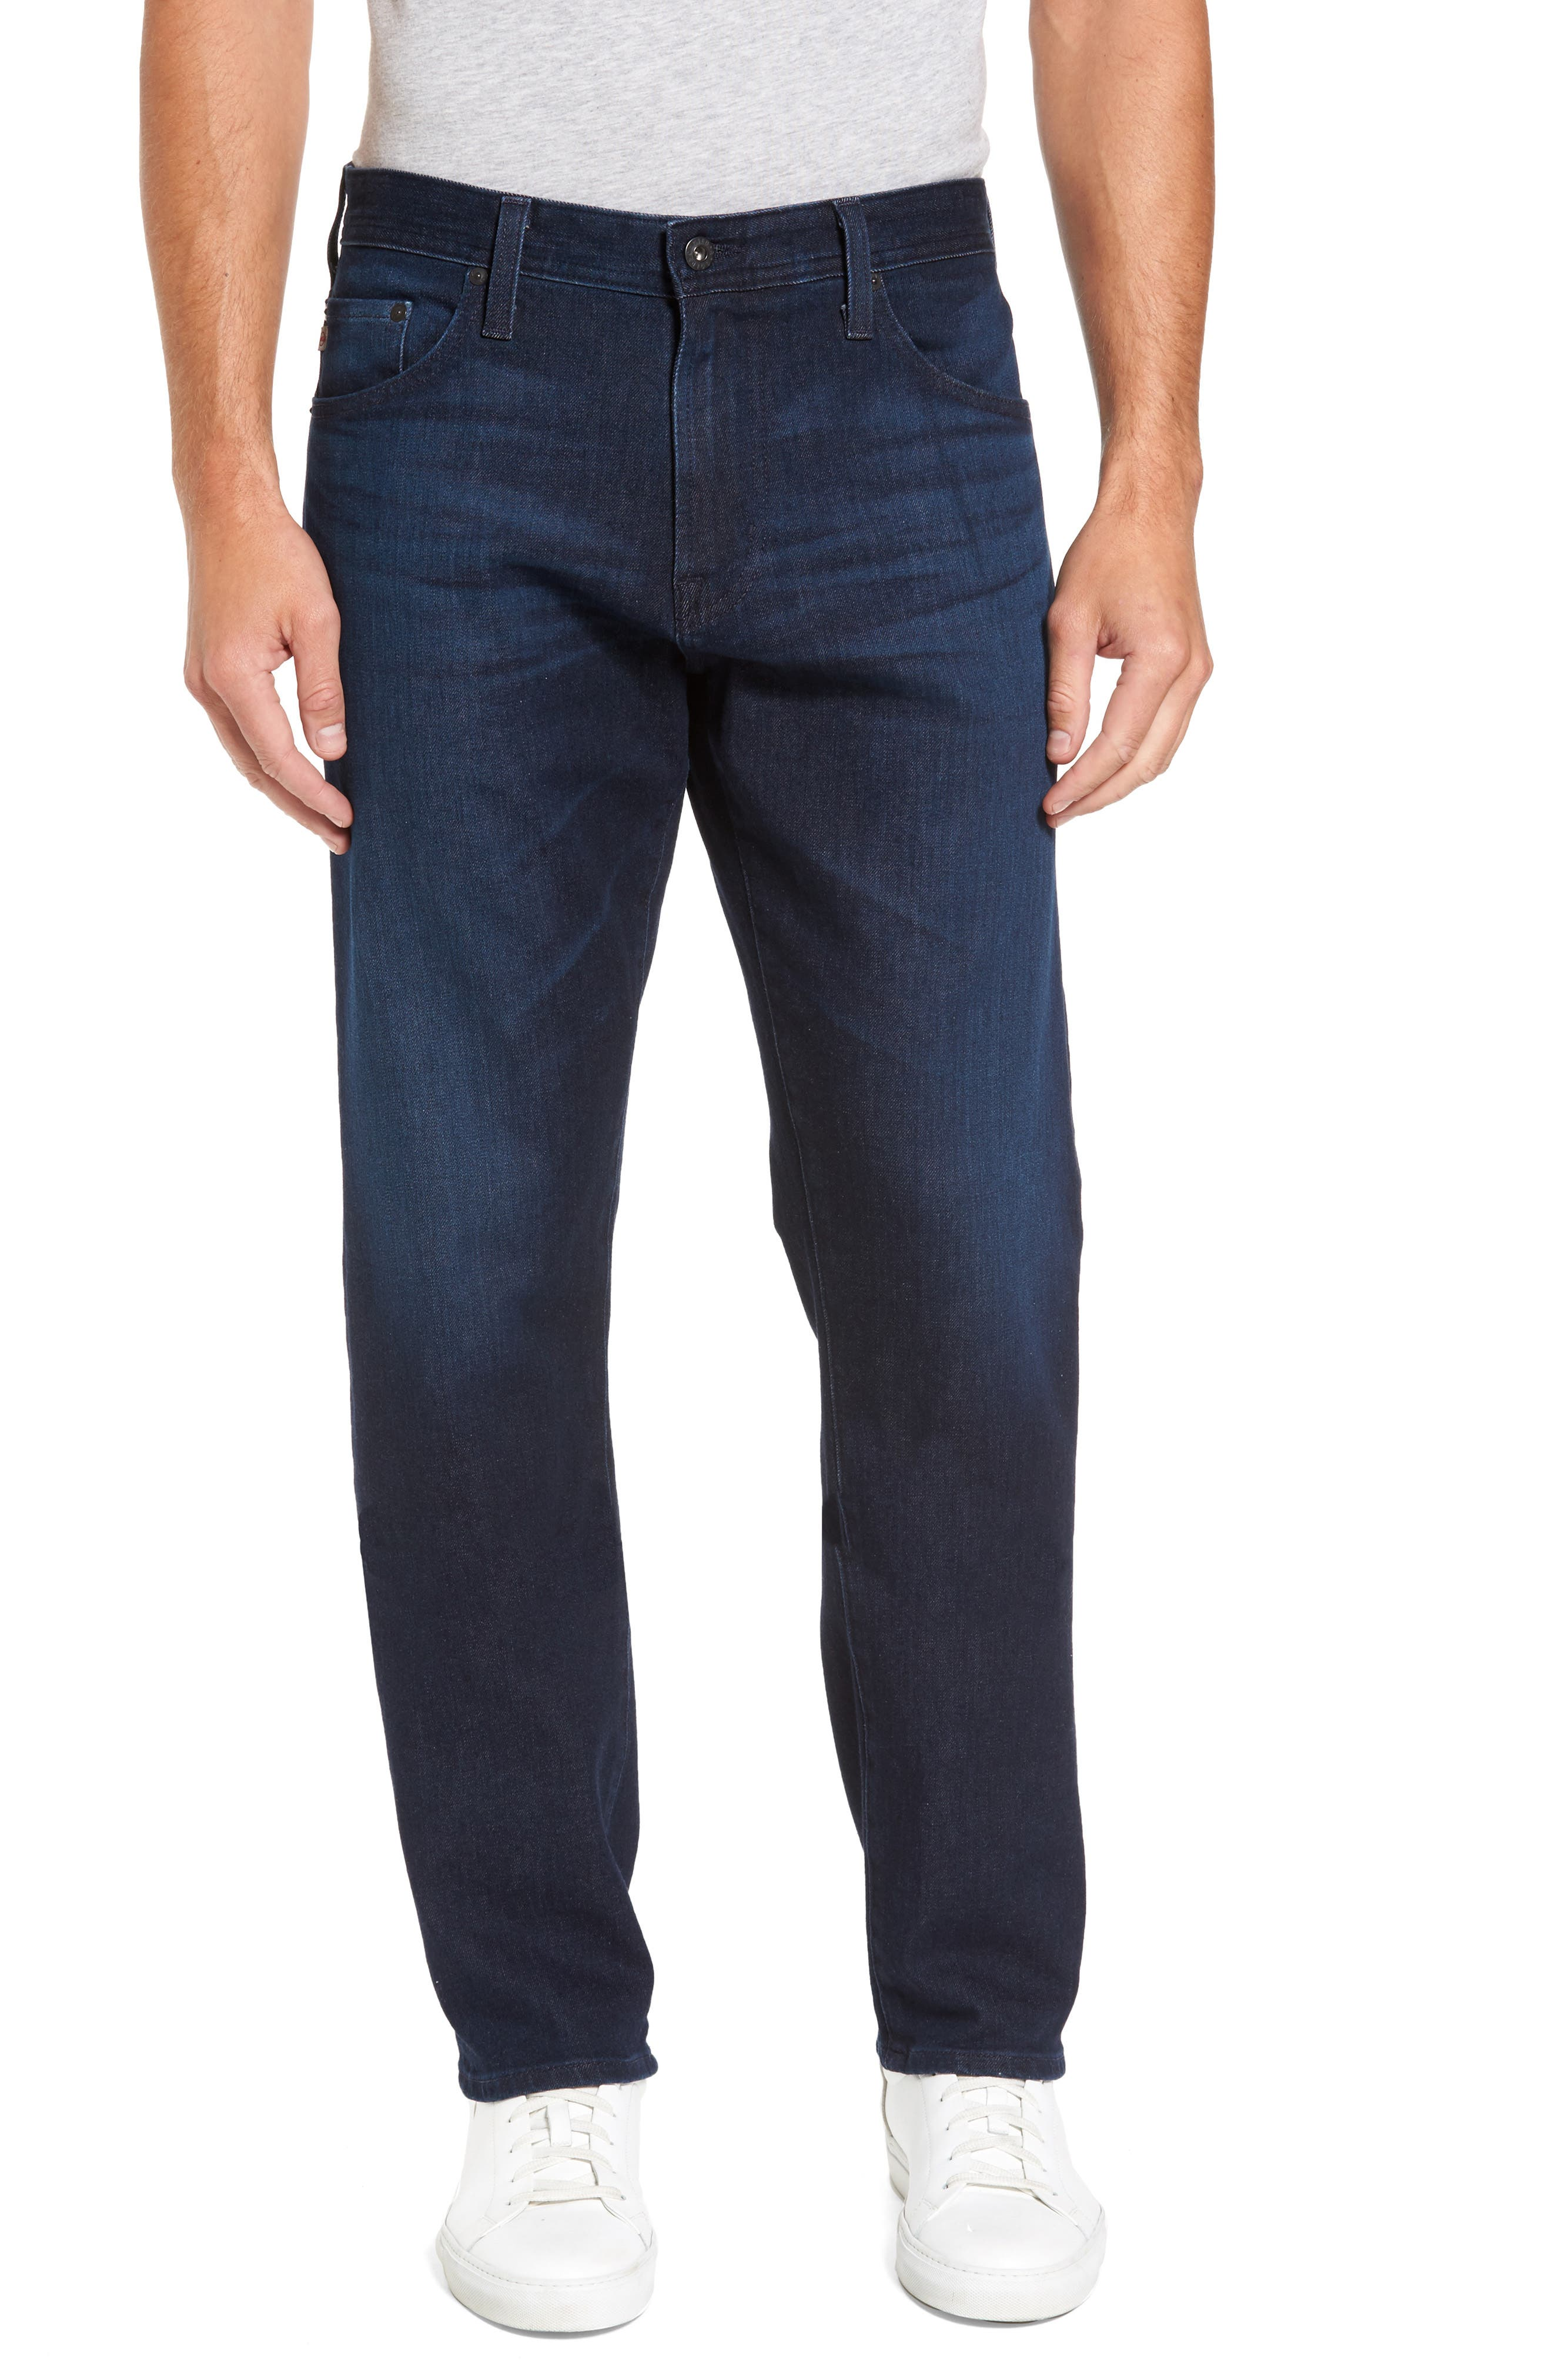 Ives Straight Leg Jeans,                         Main,                         color, 482